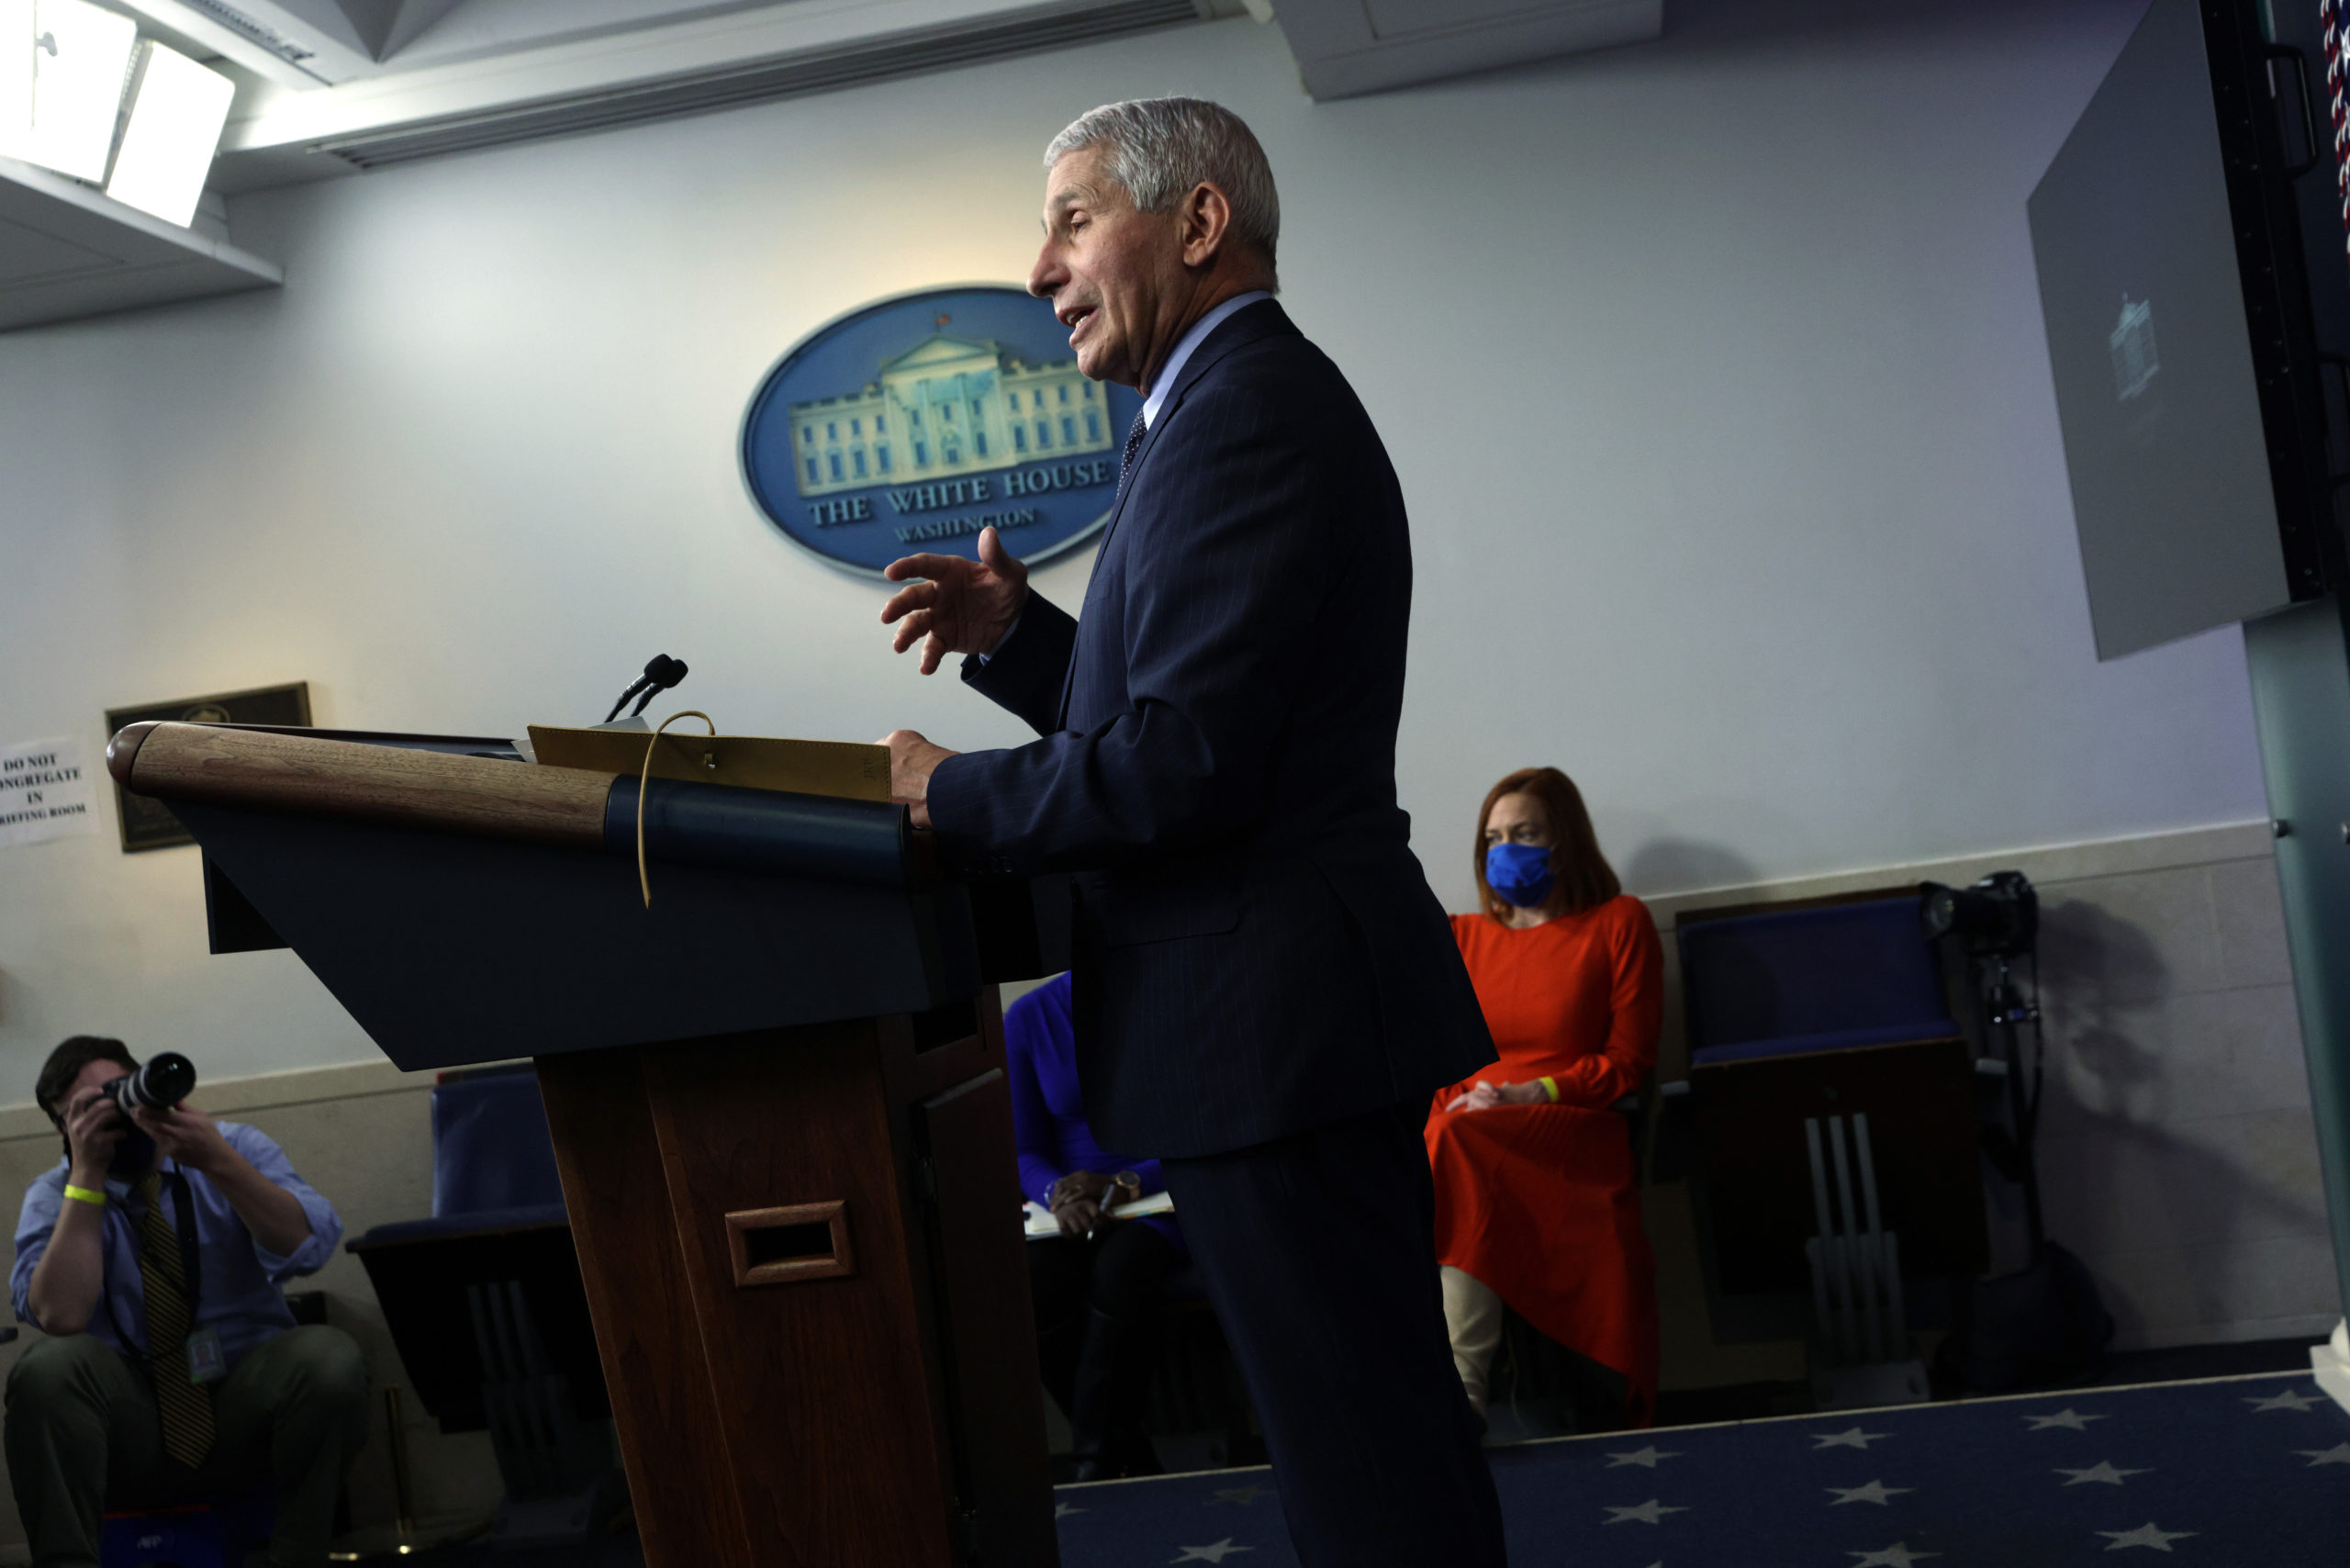 Dr. Anthony Fauci during a White House press briefing on Jan. 21. (Alex Wong/Getty Images)